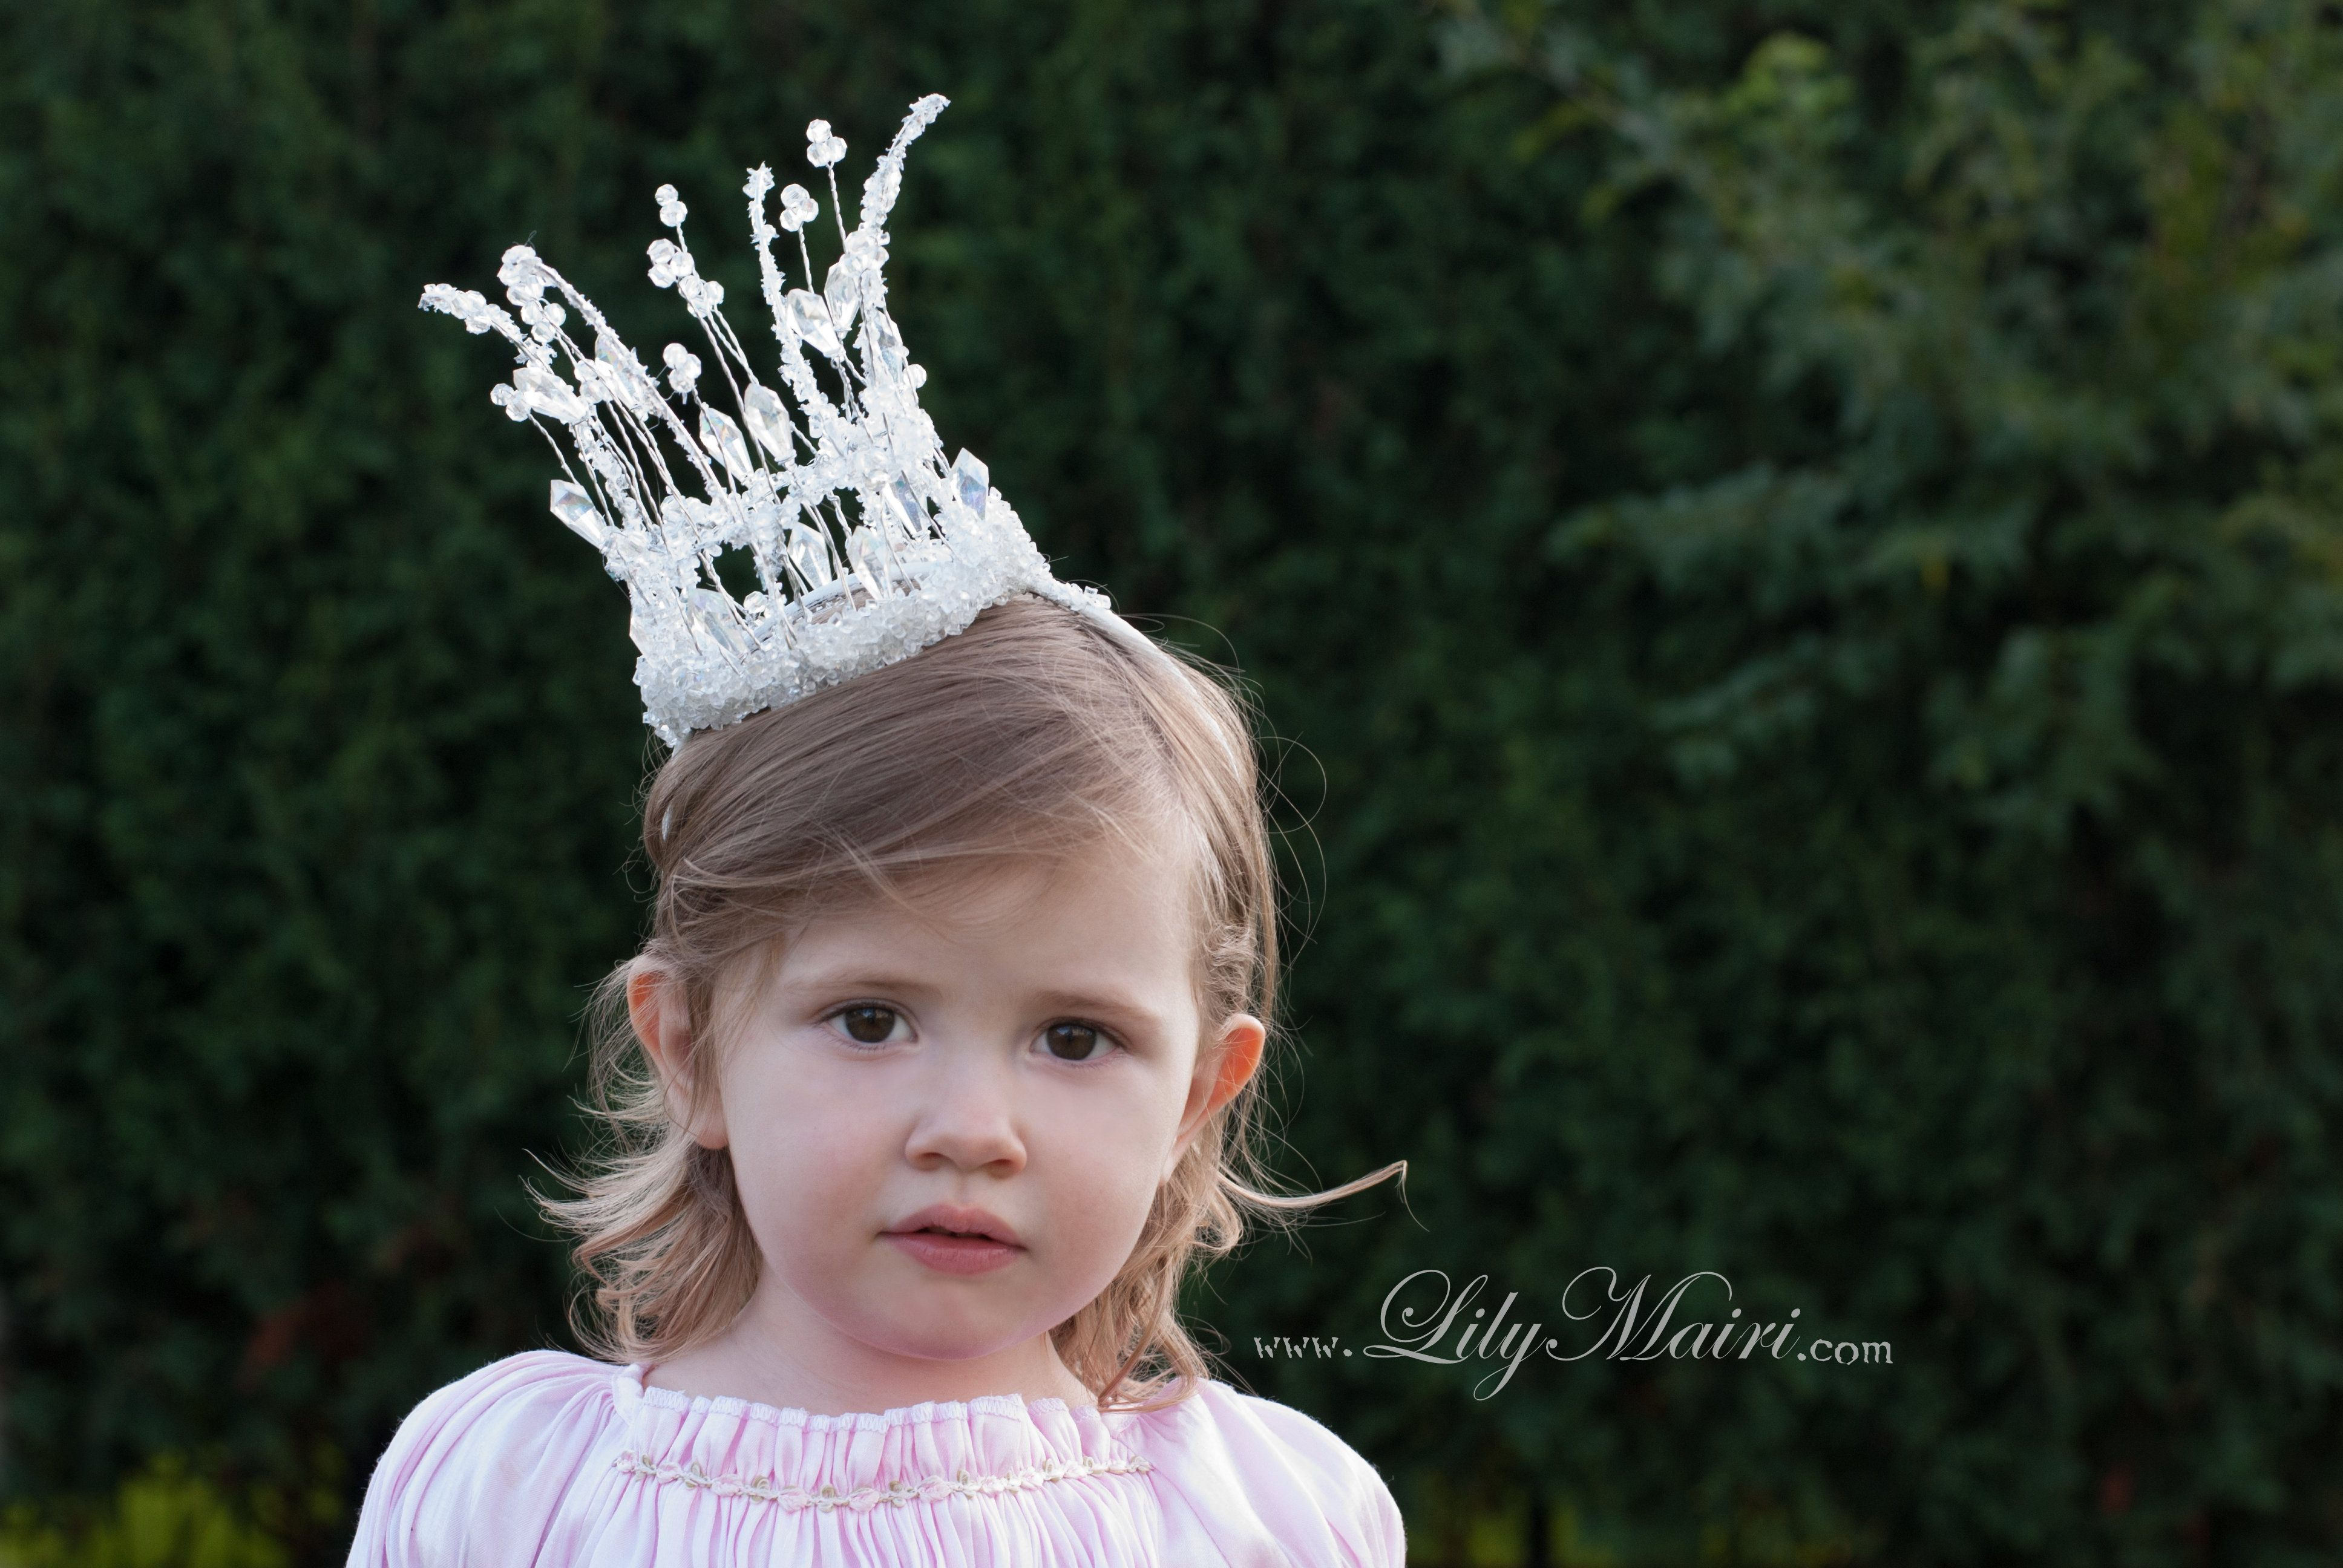 How sweet would this be for a flower girl in a snowy, woodland wedding?! Or for a snow princess costume! www.LilyMairi.com